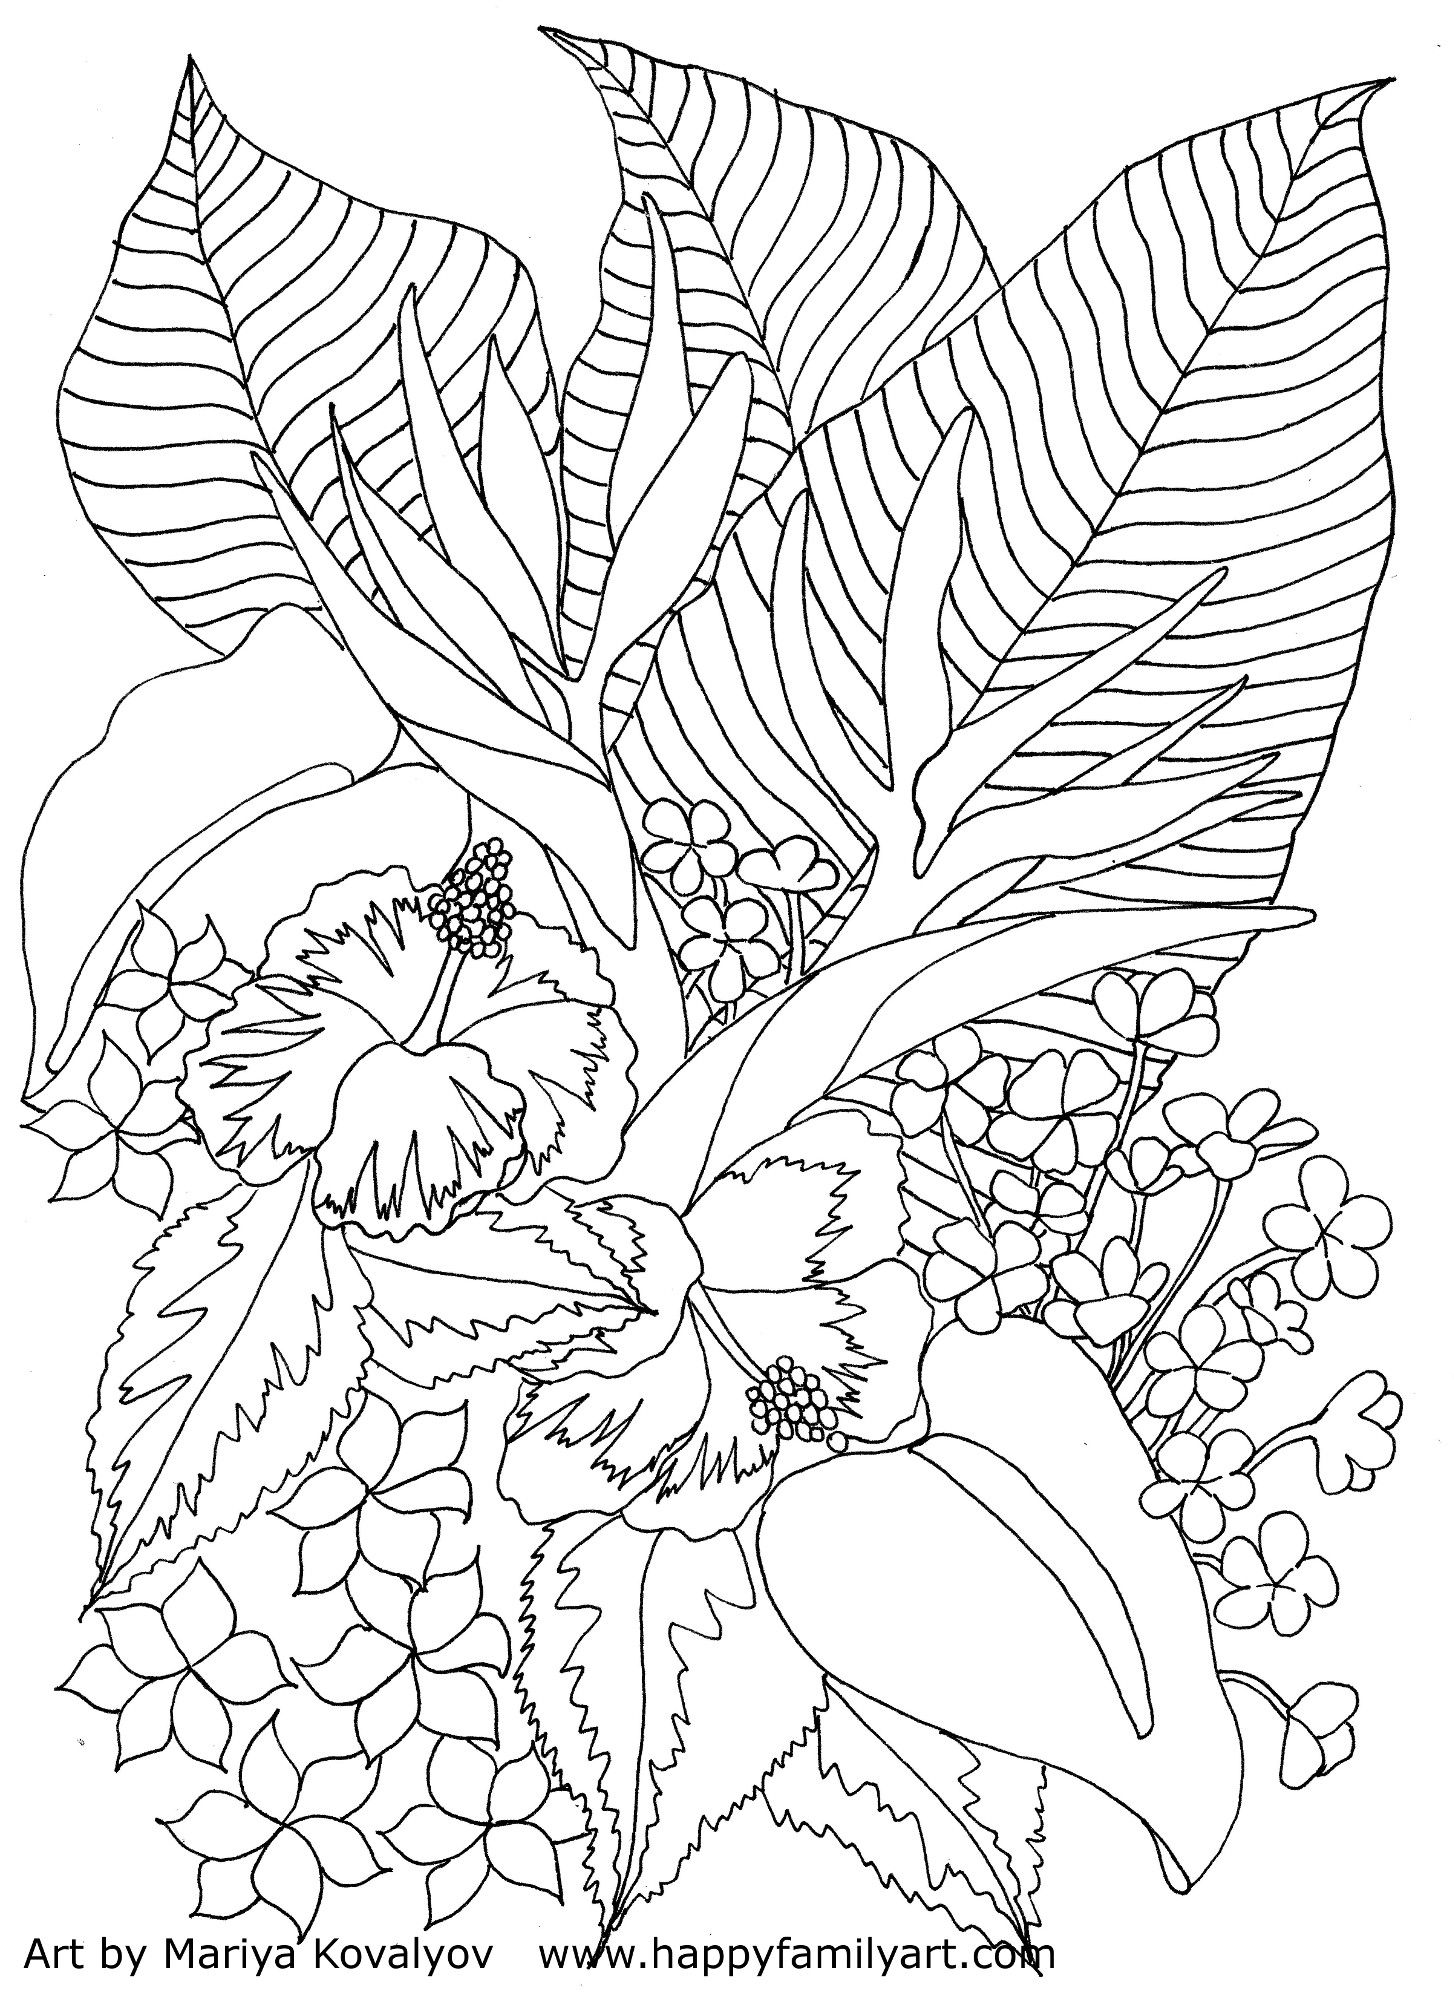 Tropical Flowers Coloring Page--Please make sure to know